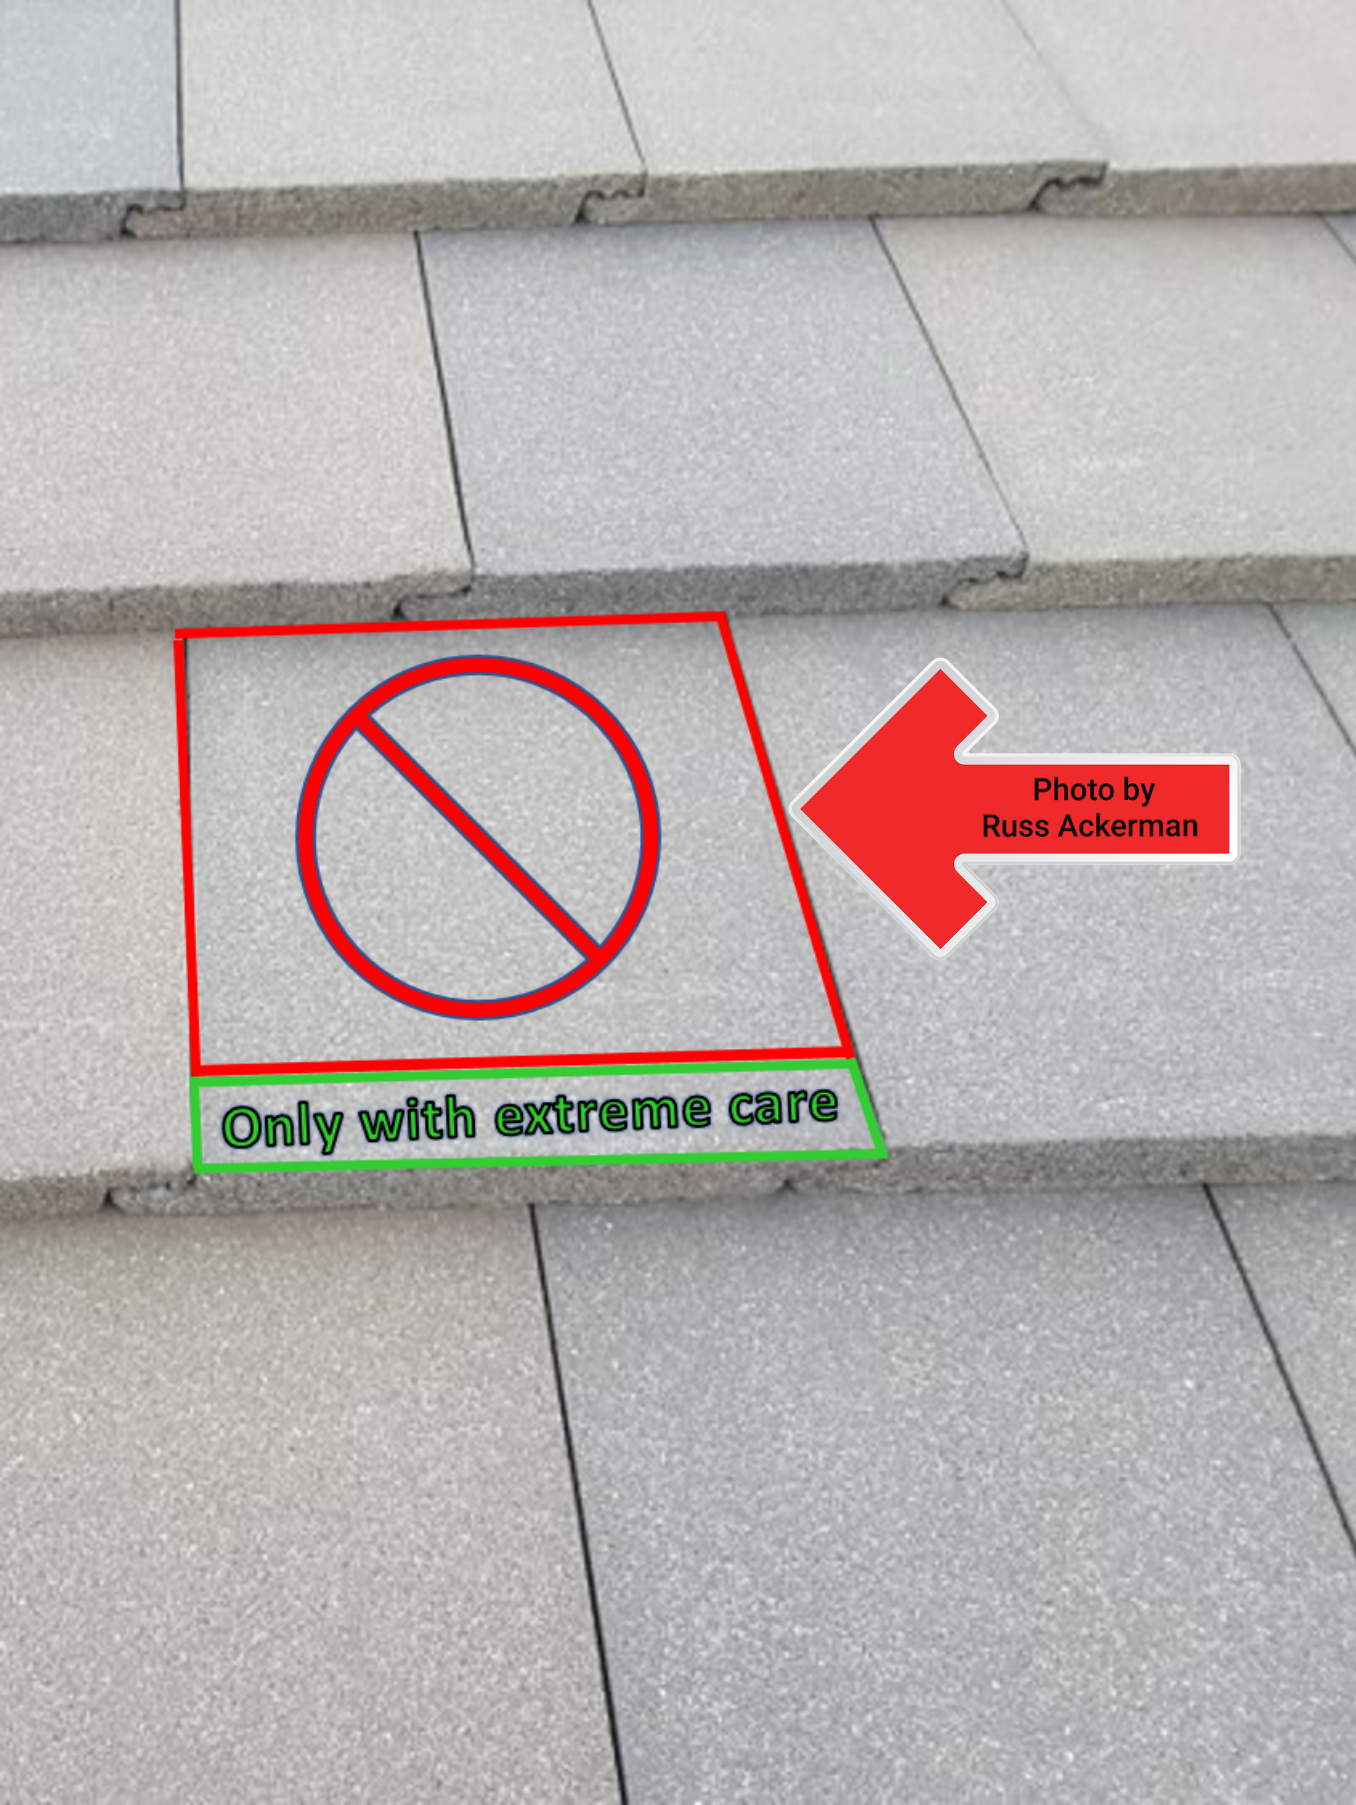 Tile roofs are not indestructible, anyone walking on them must use extreme care or they will break tiles with each step they take.